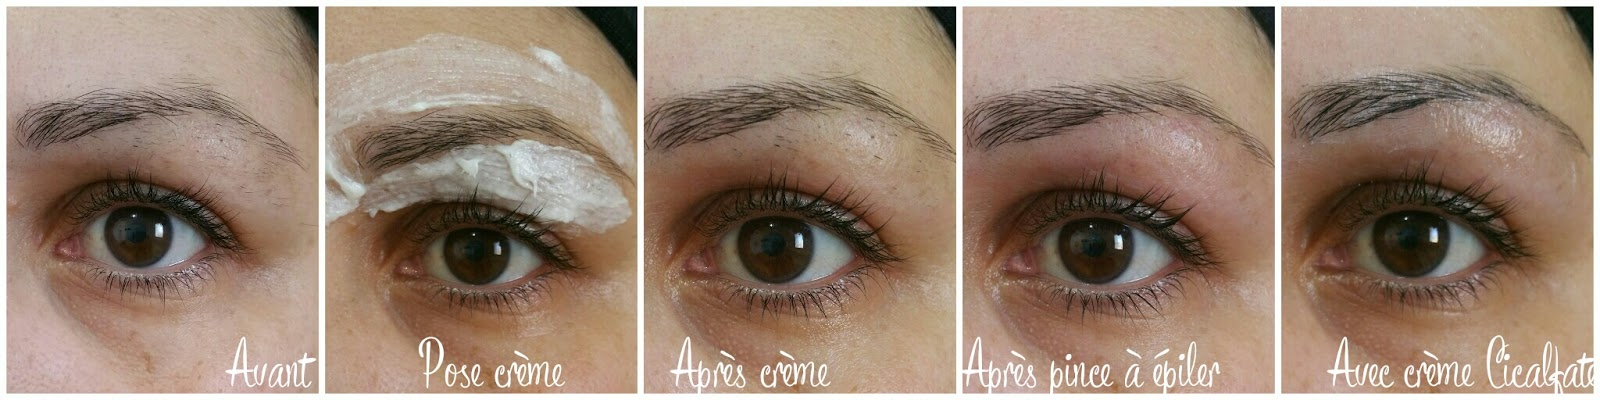 epilation-sourcils-maison-creme-depilatoire-depil-perfect-blondepil-mama-syca-beaute